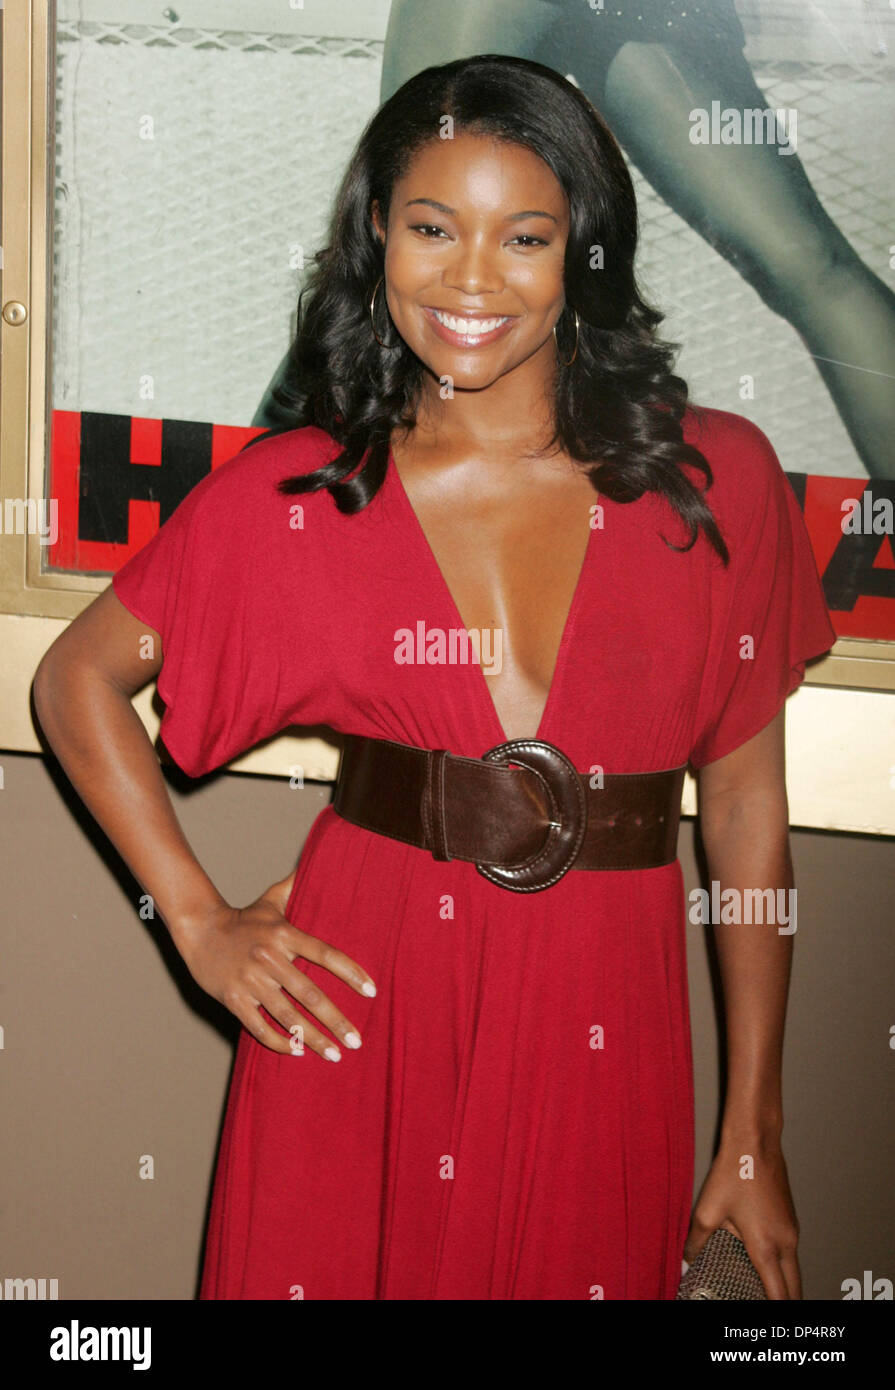 Aug 22, 2006; New York, NY, USA; Actress GABRIELLE UNION at the arrrivals for the opening night of hip hop artist Stock Photo